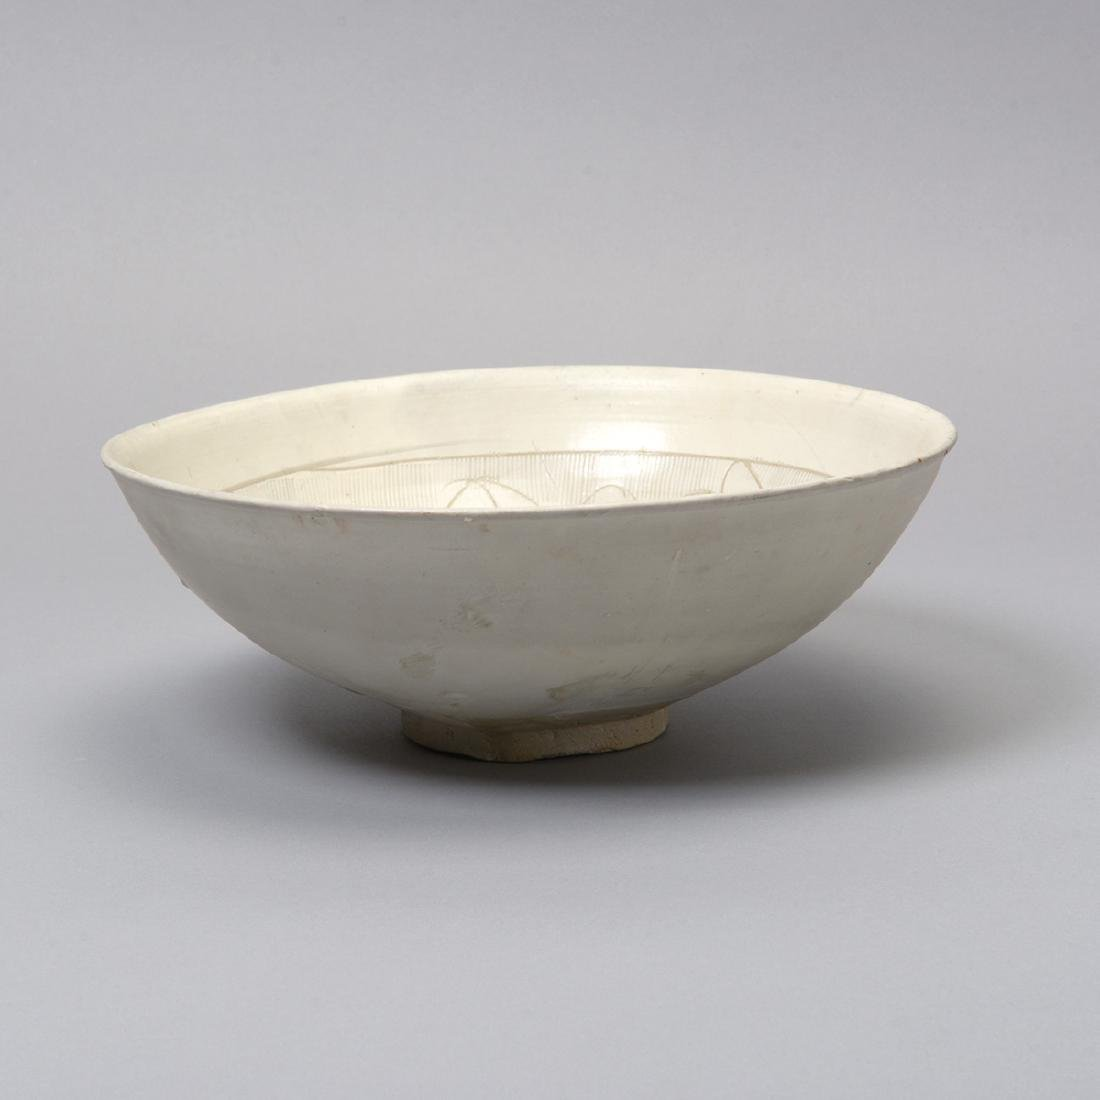 Three Glazed Ceramic Deep Bowls, Song Dynasty - 2